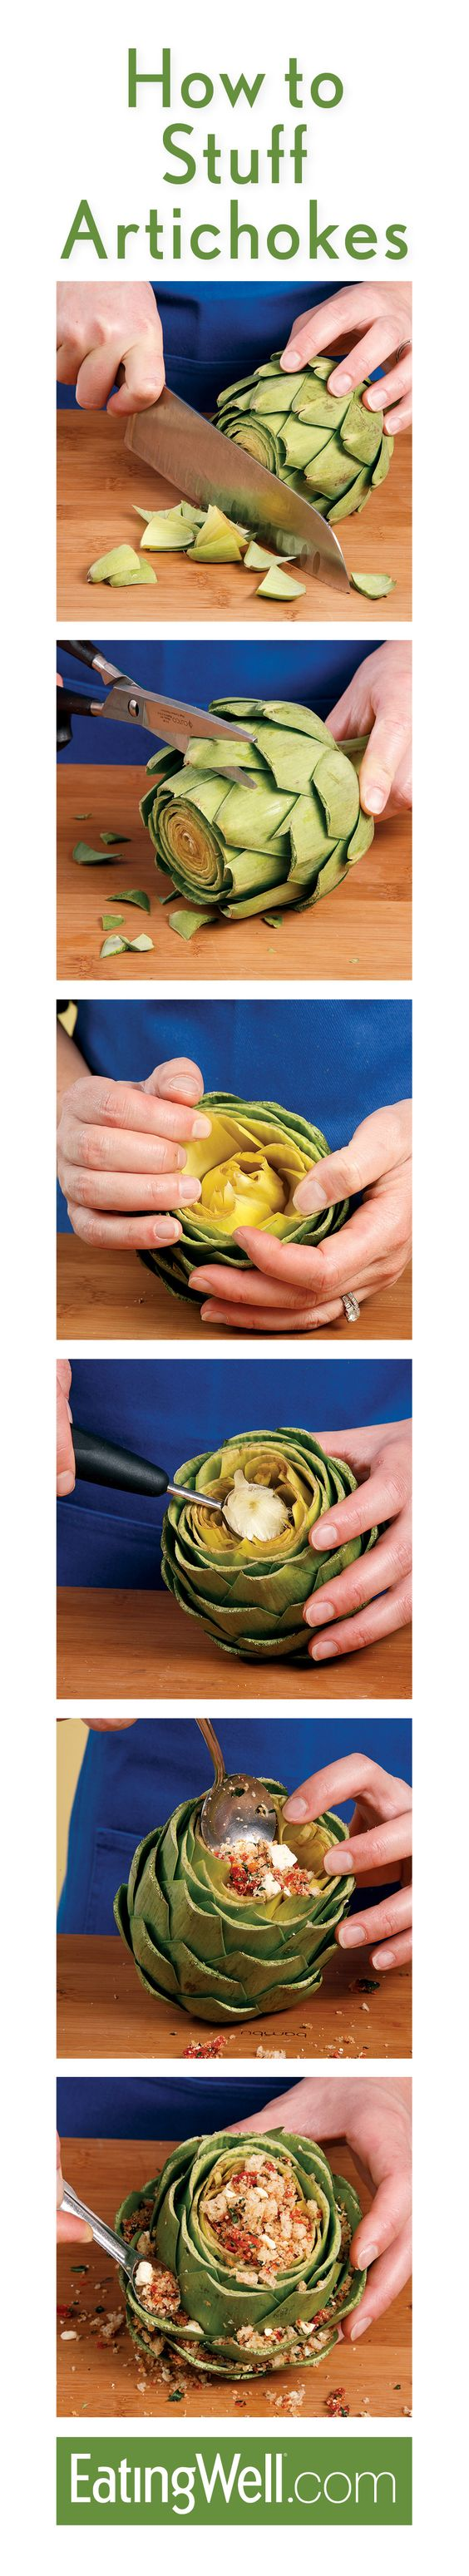 6 Easy Steps to Stuffing Artichokes